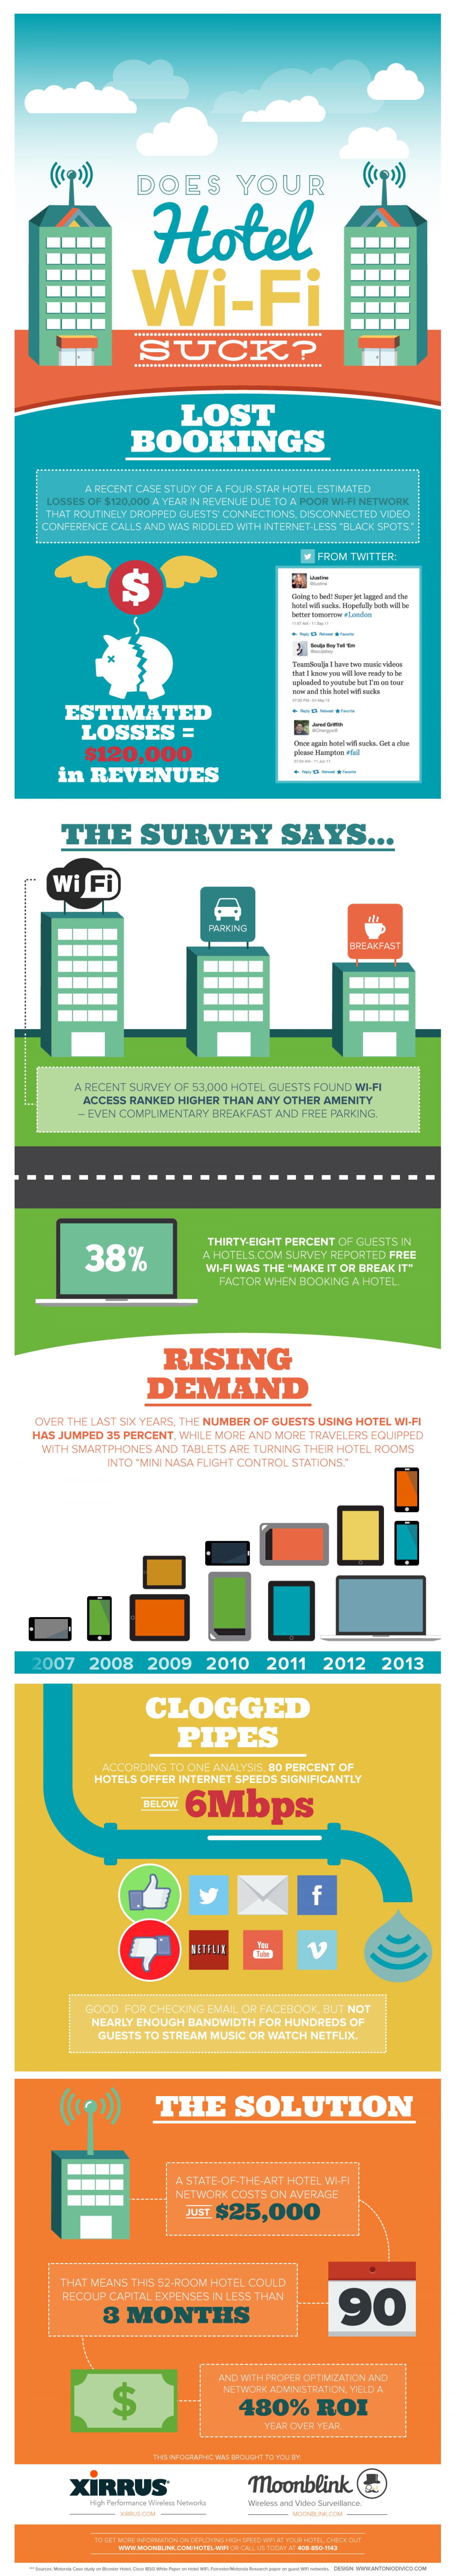 Does Your Hotel WiFi Suck? Infographic